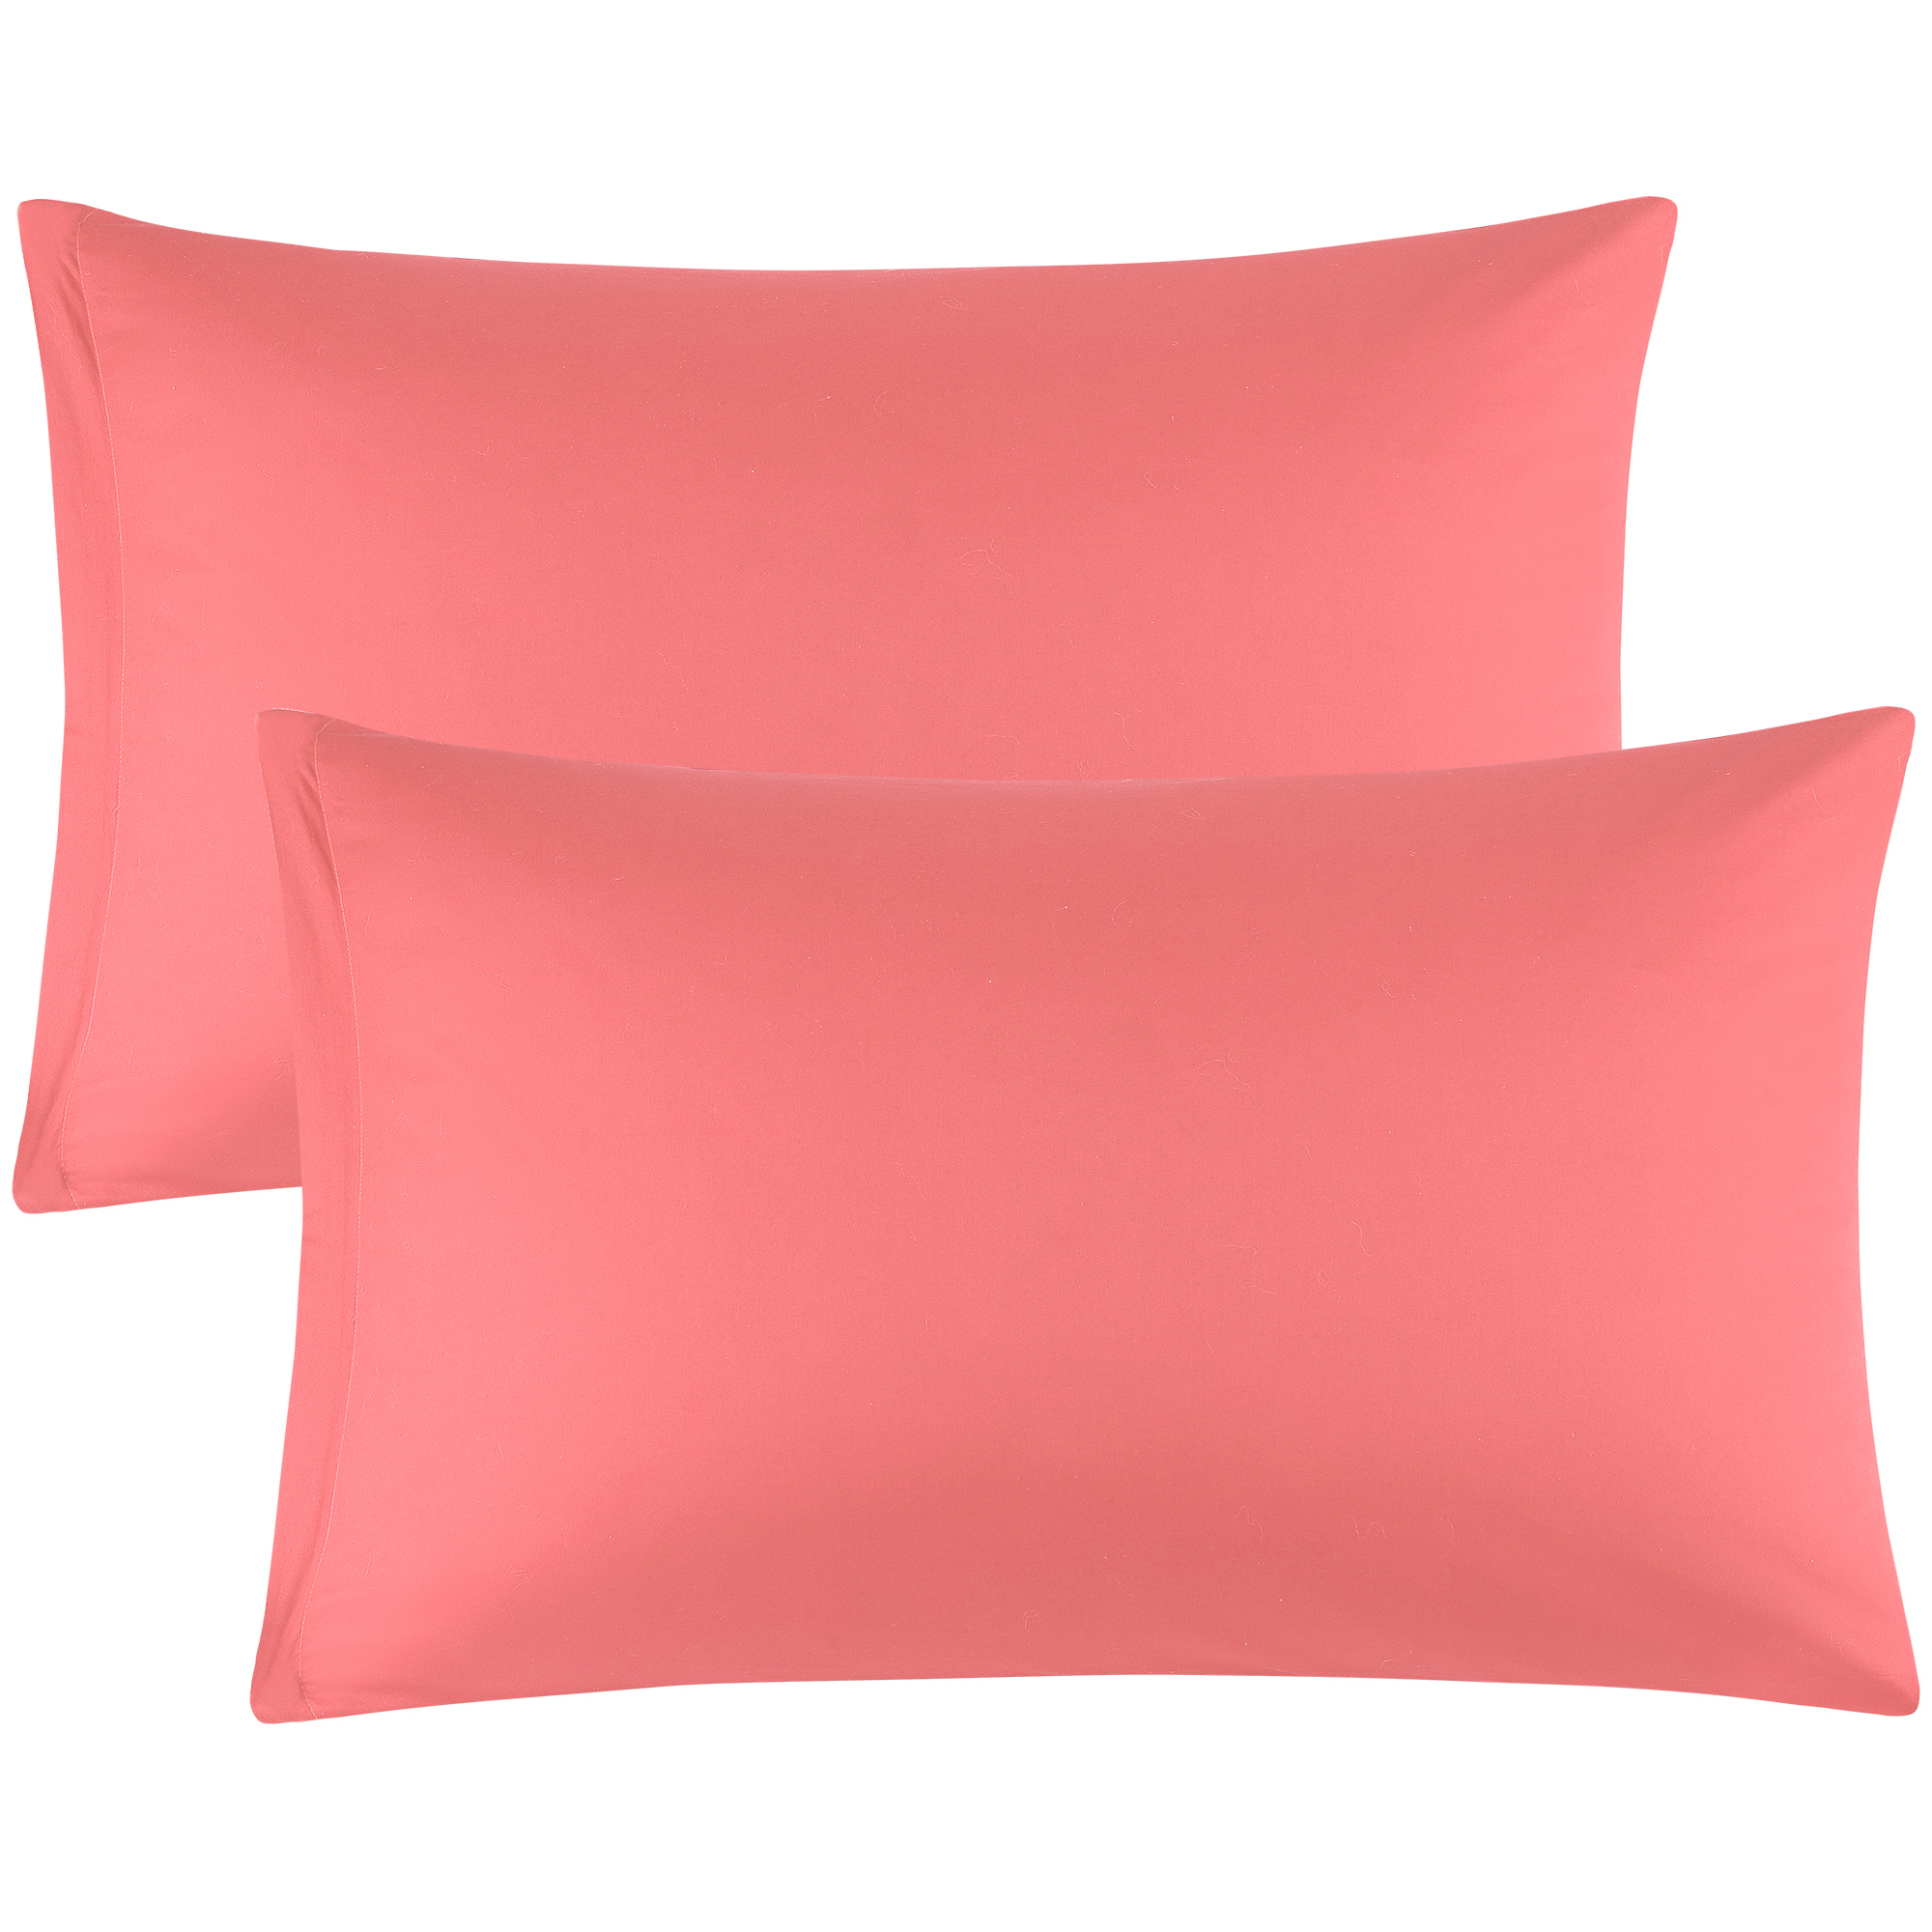 Zippered Pillowcases Covers Egyptian Cotton 2-Pack (20 x 36 Inch, Coral Pink)